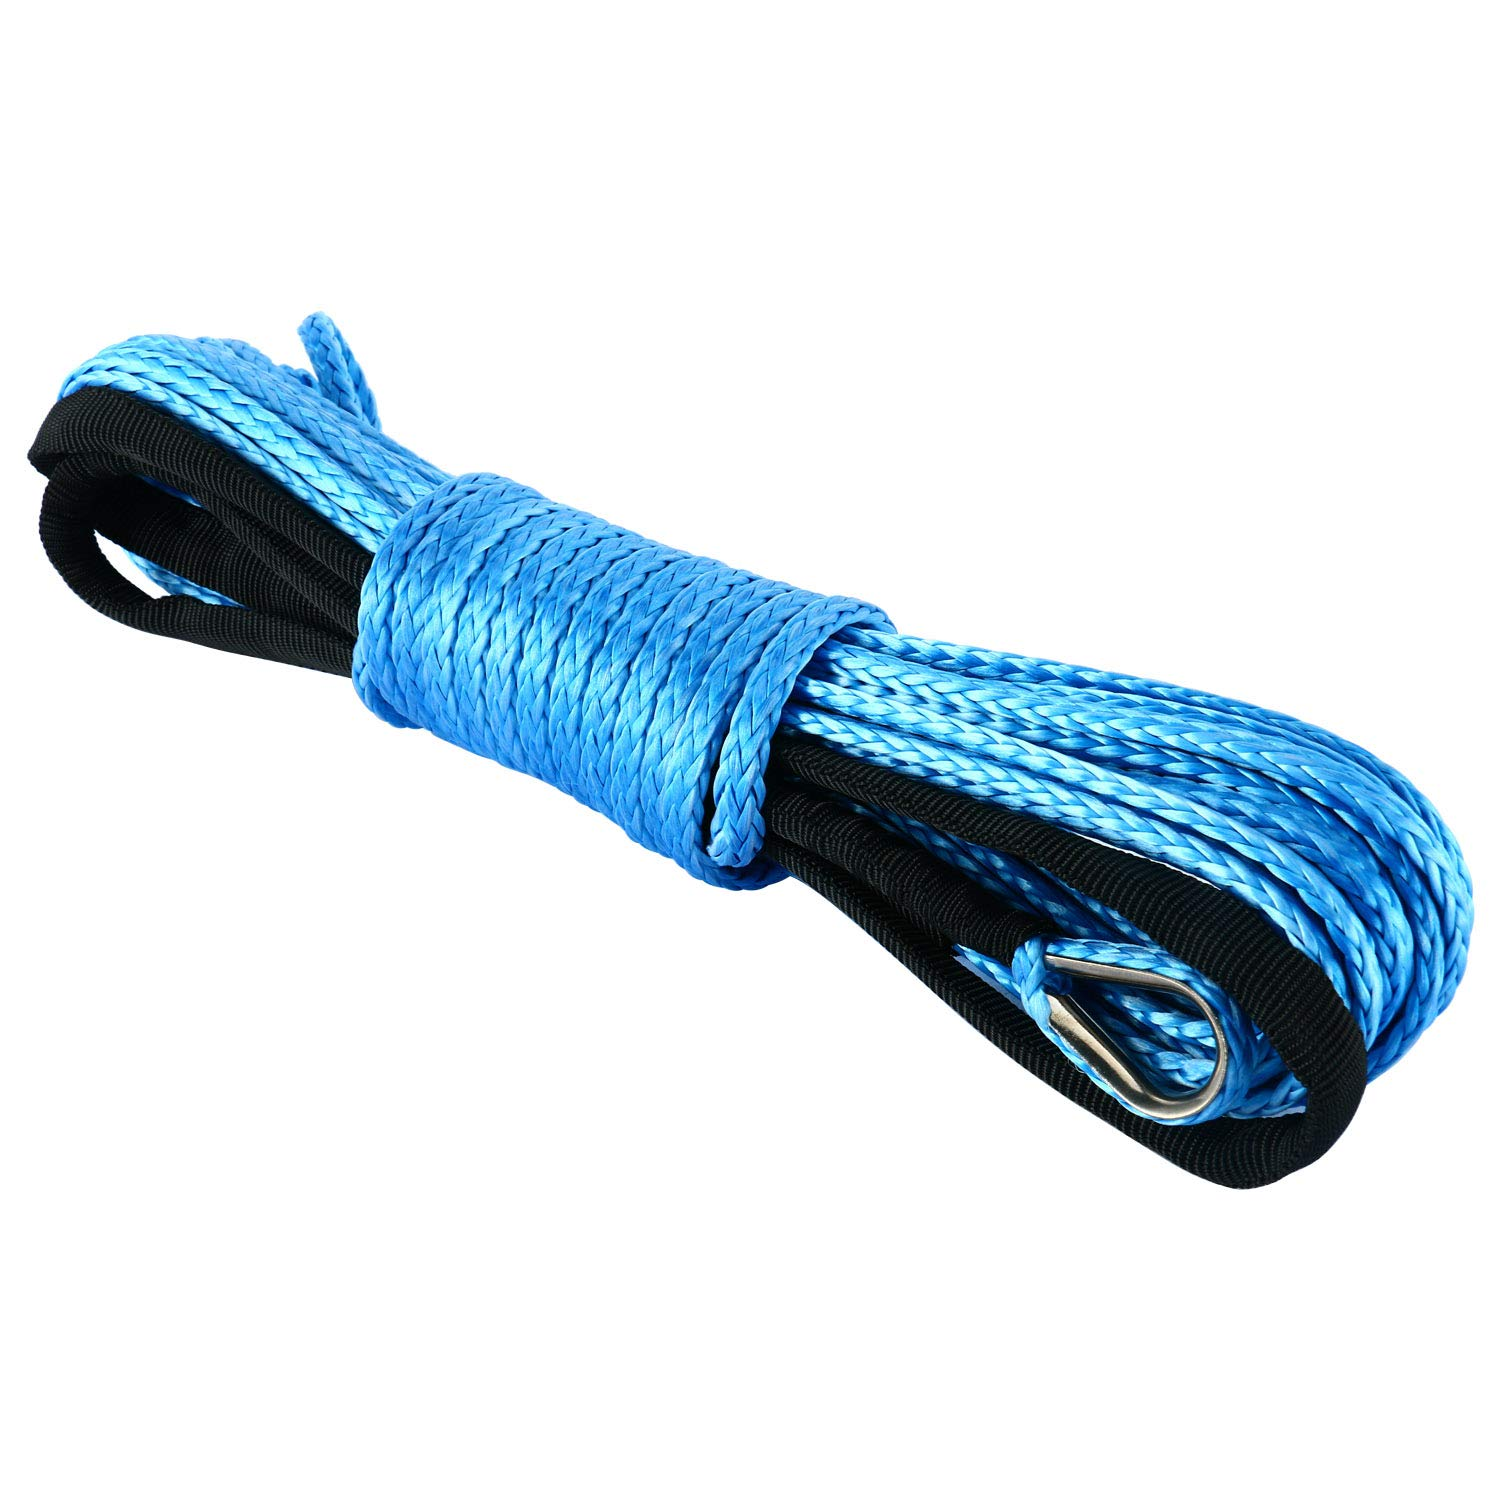 8MILELAKE Synthetic Winch Rope 1/4' x 50' 7700LBs Winch Line Cable Rope with Sheath ATV UTV freebirdtrading